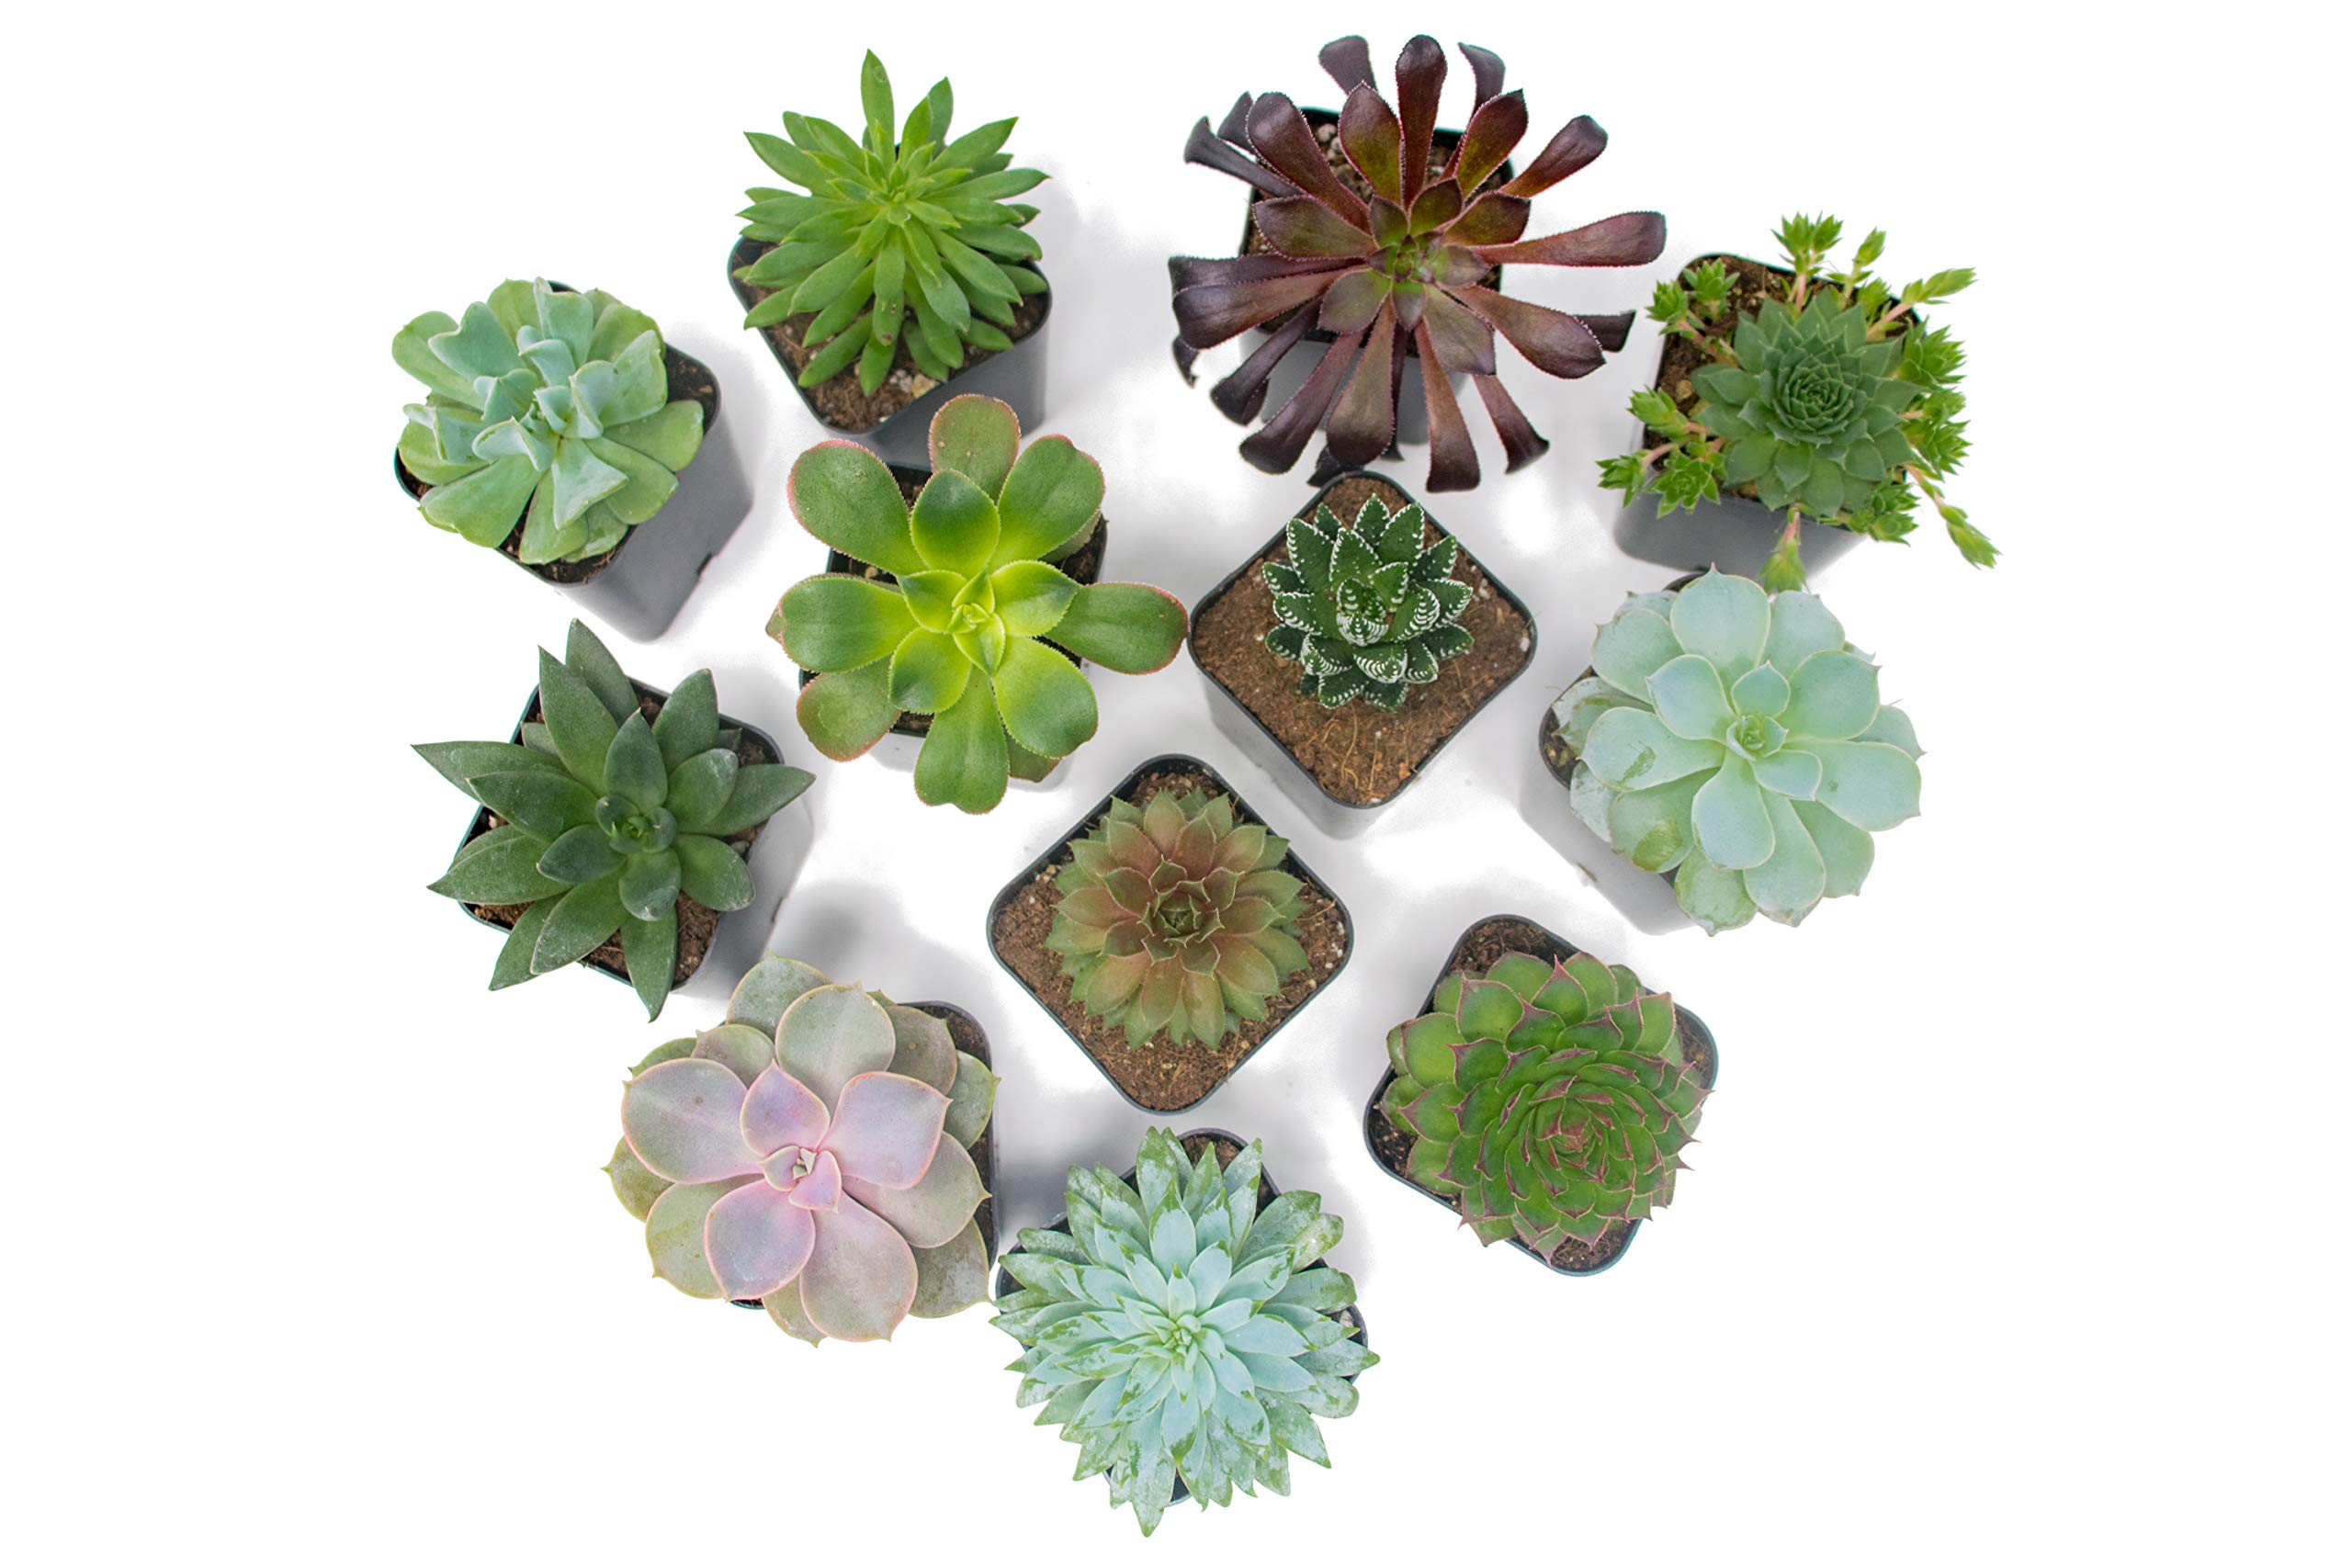 Succulent Plants (5 Pack), Fully Rooted in Planter Pots with Soil -  Real Live Potted Succulents / Unique Indoor Cactus Decor by Plants for Pets 11 HAND SELECTED: Every pack of succulents we send is hand-picked. You will receive a unique collection of species that are FULLY ROOTED IN 2 INCH POTS, which will be similar to the product photos (see photo 2 for scale). Note that we rotate our nursery stock often, so the exact species we send changes every week. THE EASIEST HOUSE PLANTS: More appealing than artificial plastic or fake faux plants, and care is a cinch. If you think you can't keep houseplants alive, you're wrong; our succulents don't require fertilizer and can be planted in a decorative pot of your choice within seconds. DIY HOME DECOR: The possibilities are only limited by your imagination; display them in a plant holder, a wall mount, a geometric glass vase, or even in a live wreath. Because of their amazingly low care requirements, they can even make the perfect desk centerpiece for your office.